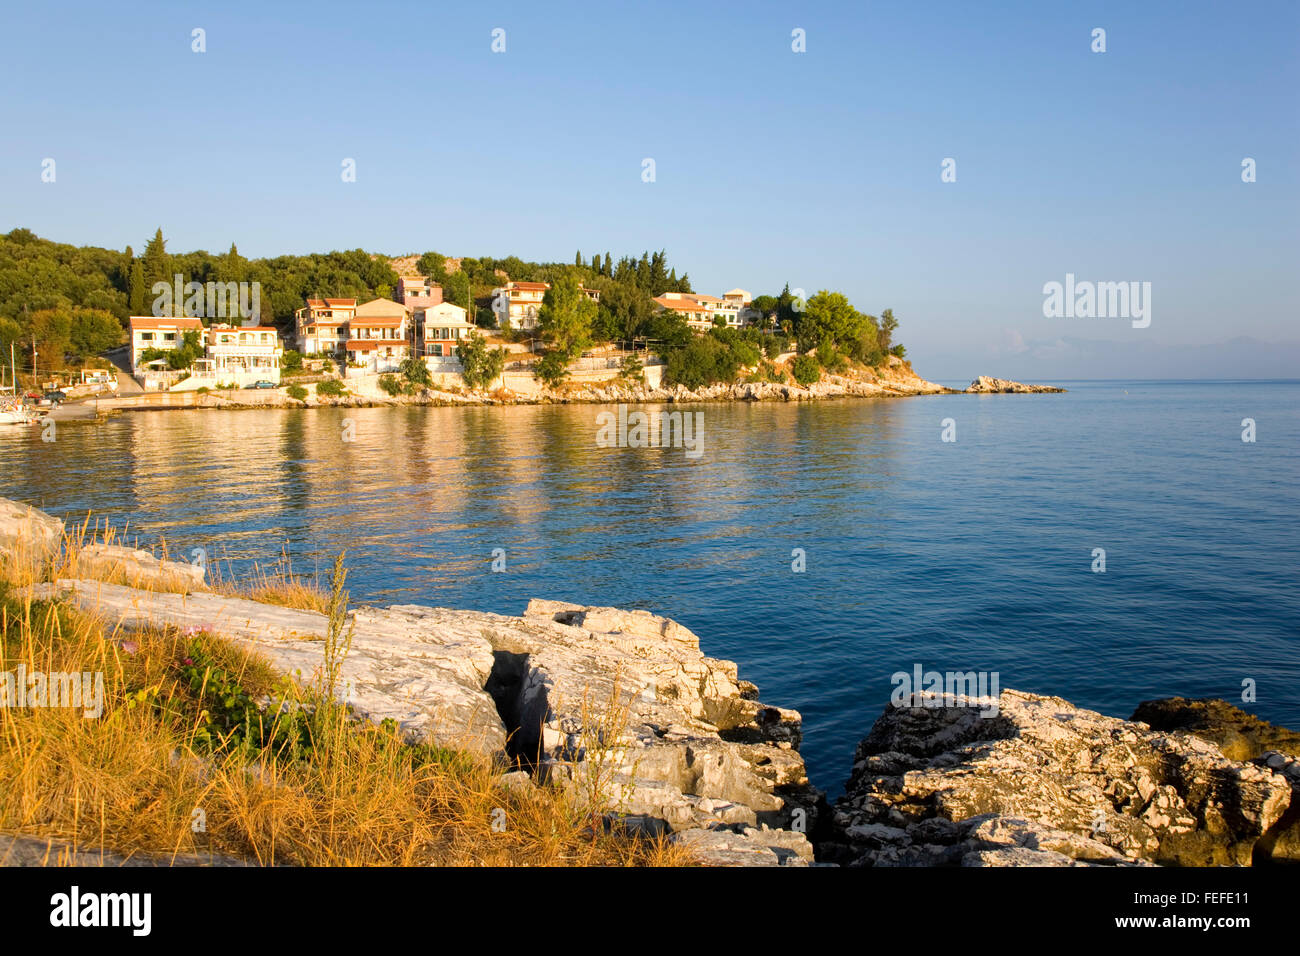 Kassiopi, Corfu, Ionian Islands, Greece. Rocky headland lit by the early morning sun. - Stock Image